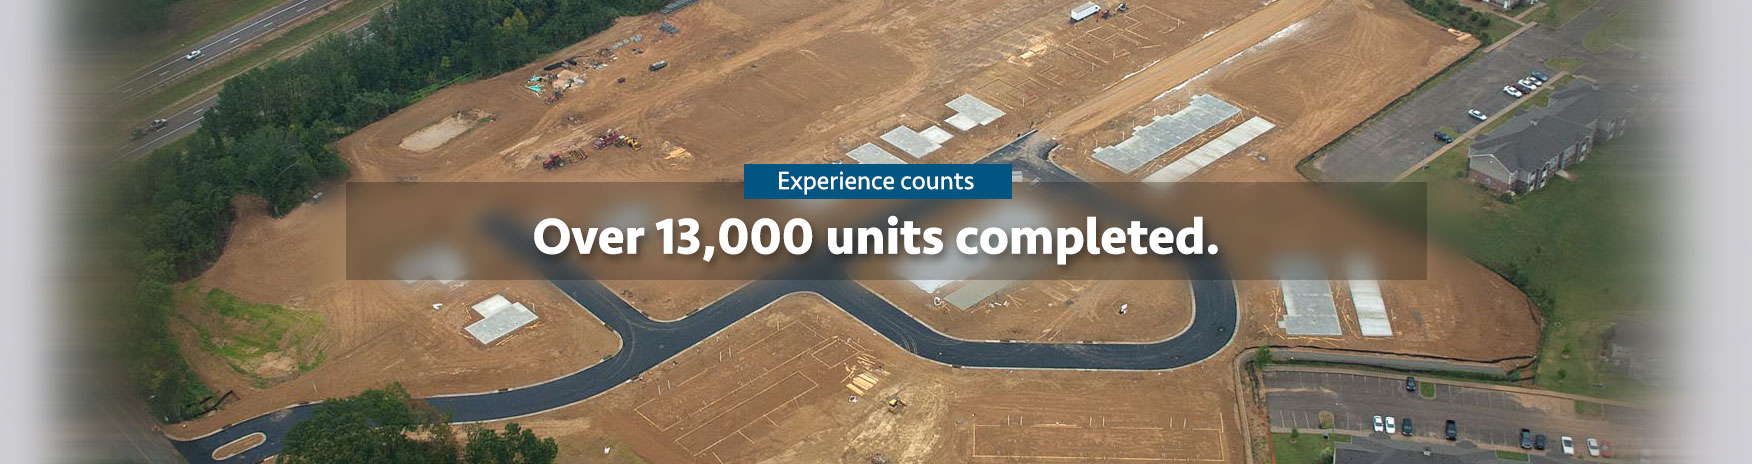 Experience-counts-13000-units